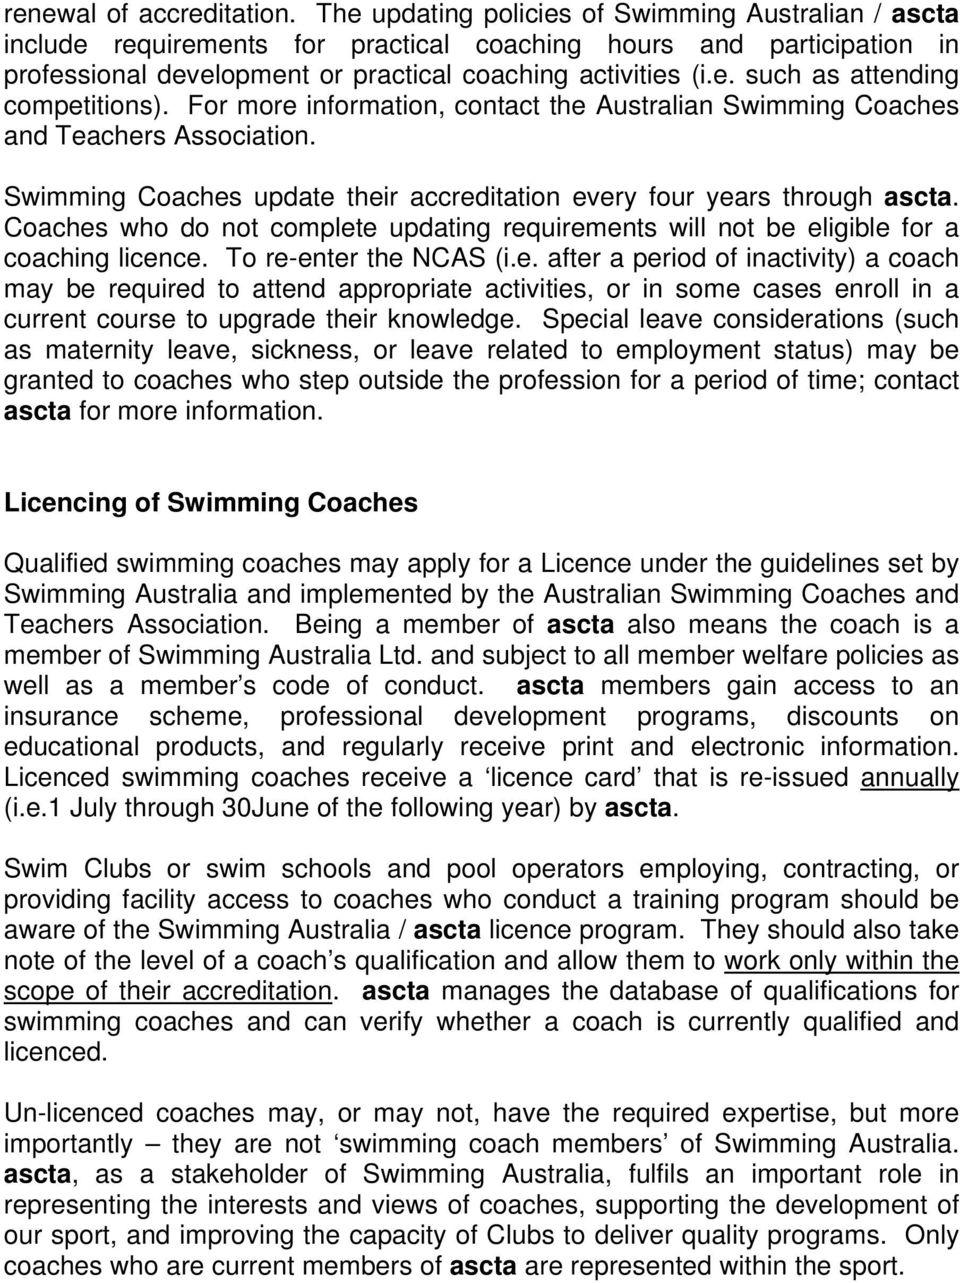 For more information, contact the Australian Swimming Coaches and Teachers Association. Swimming Coaches update their accreditation every four years through ascta.